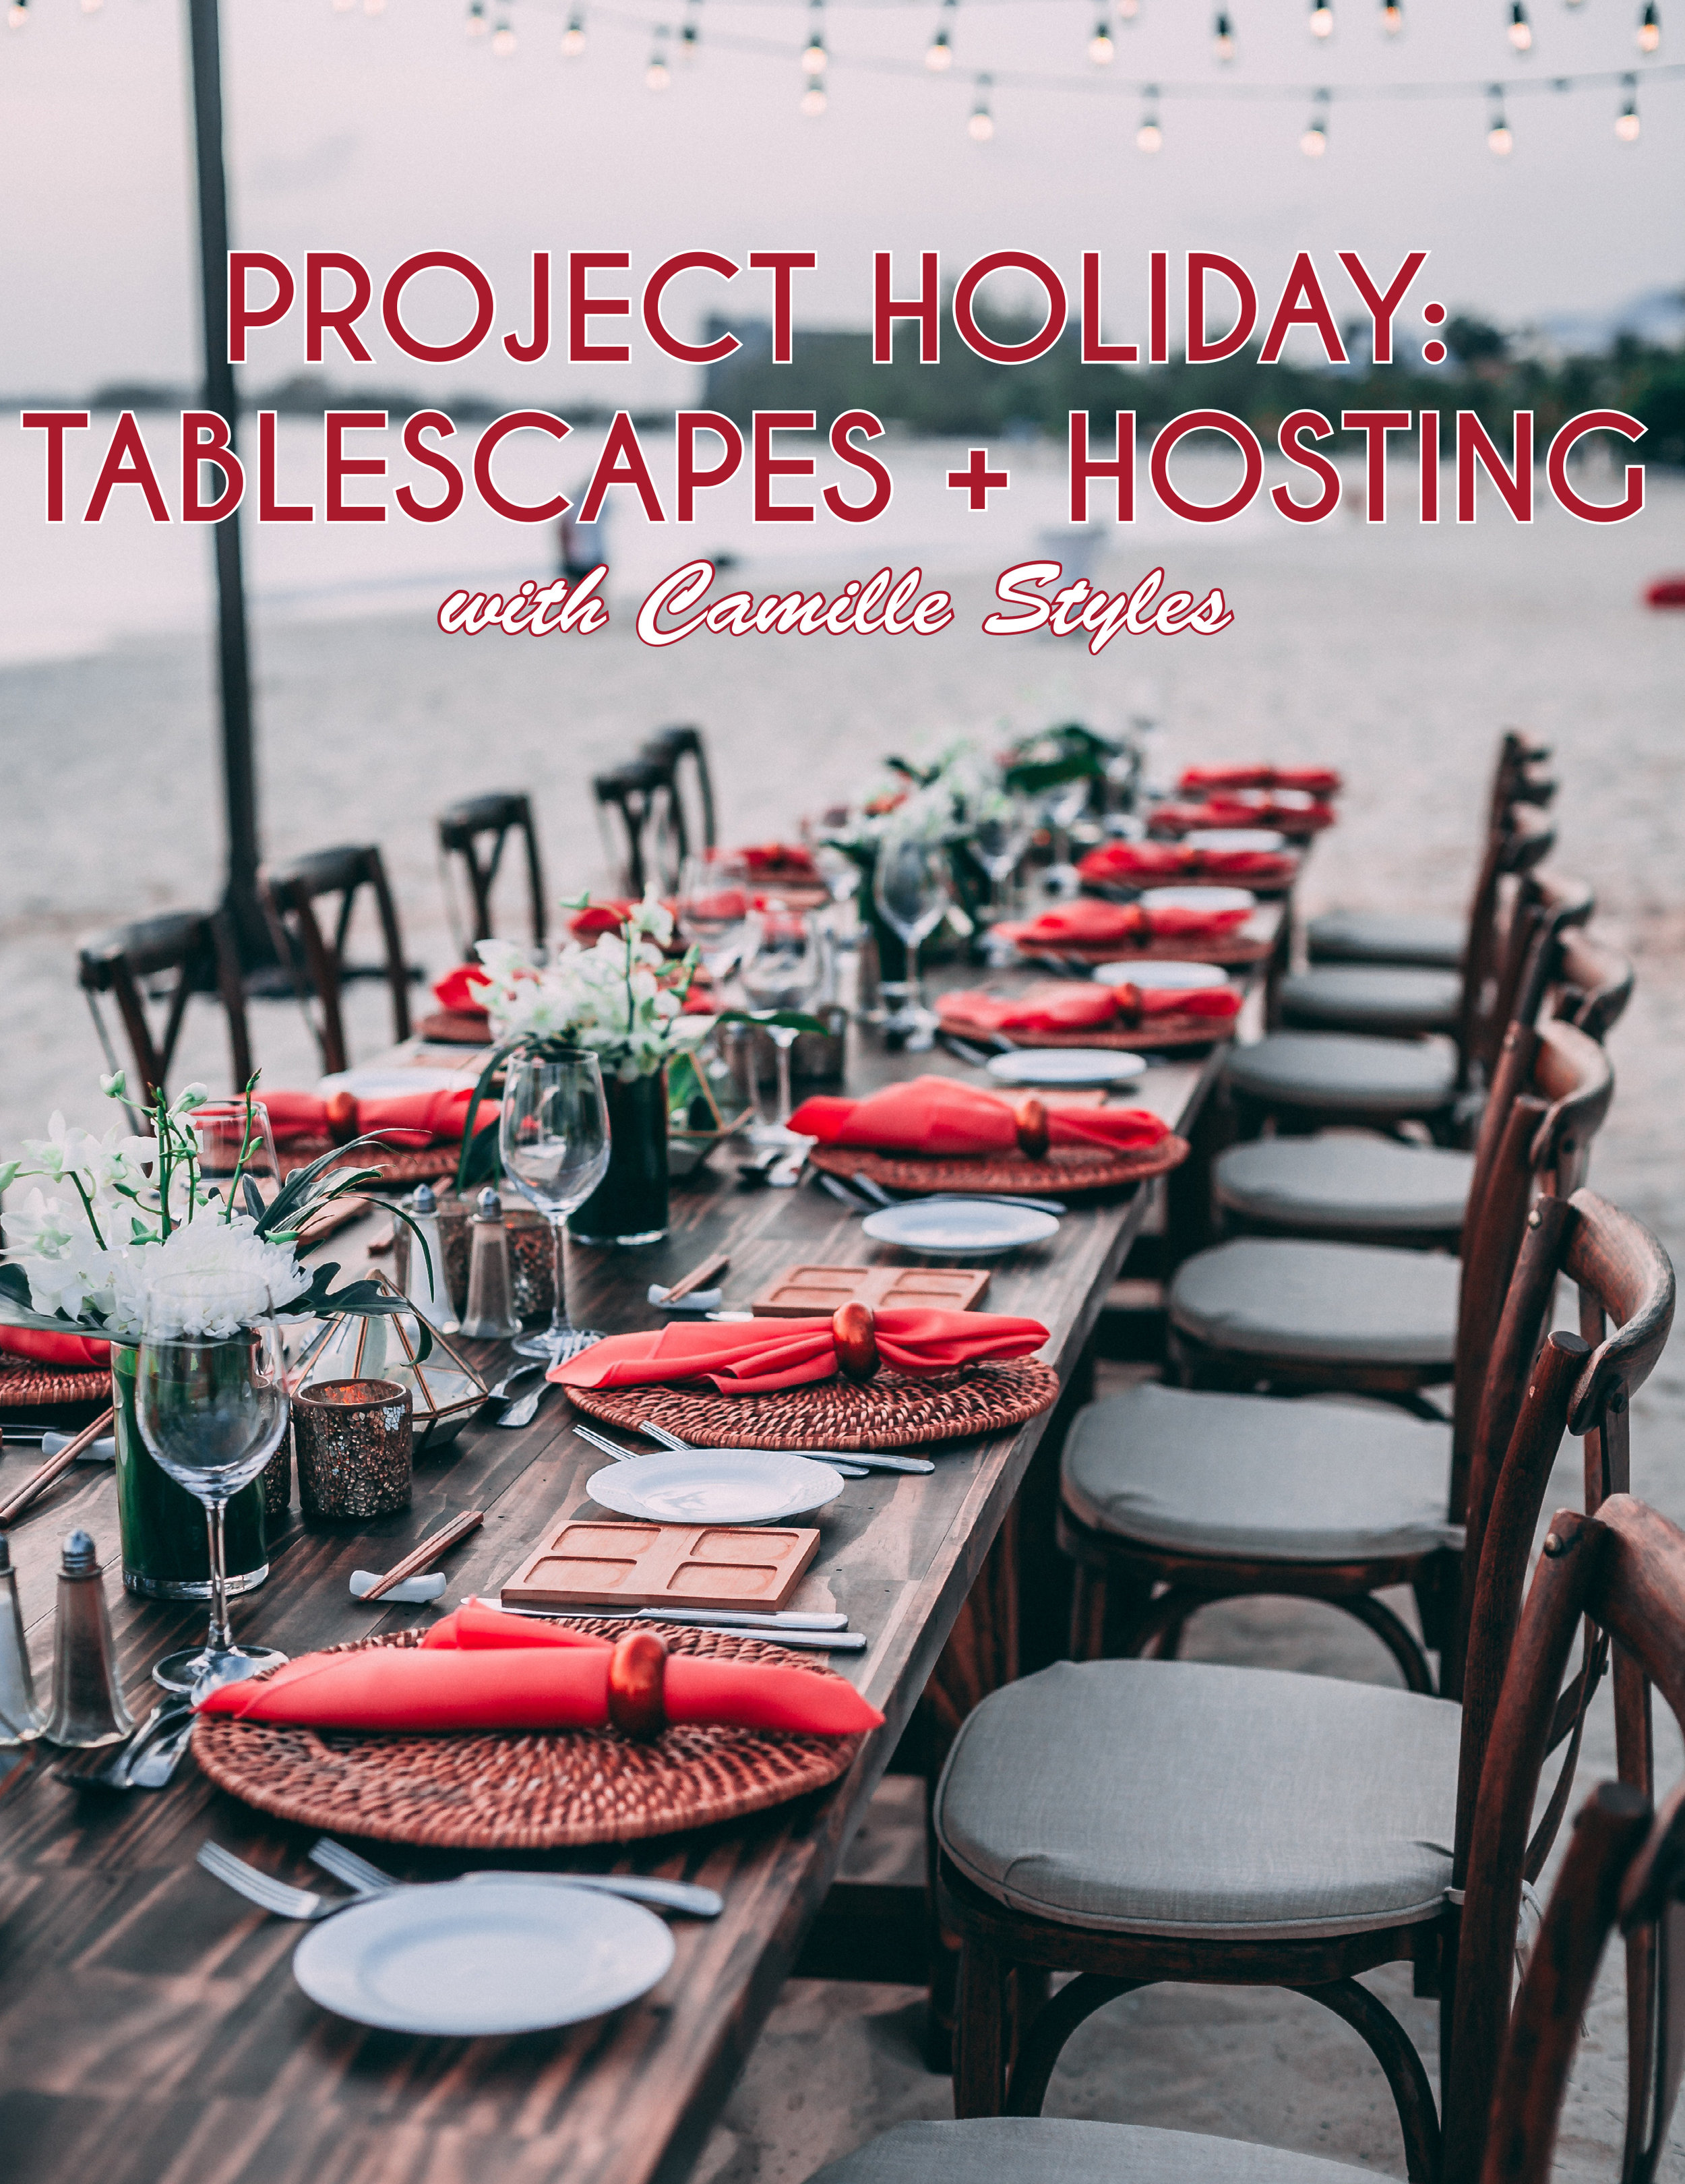 AM NOV PROJECT HOLIDAY TABLESCAPES AND HOSTING-1.jpg